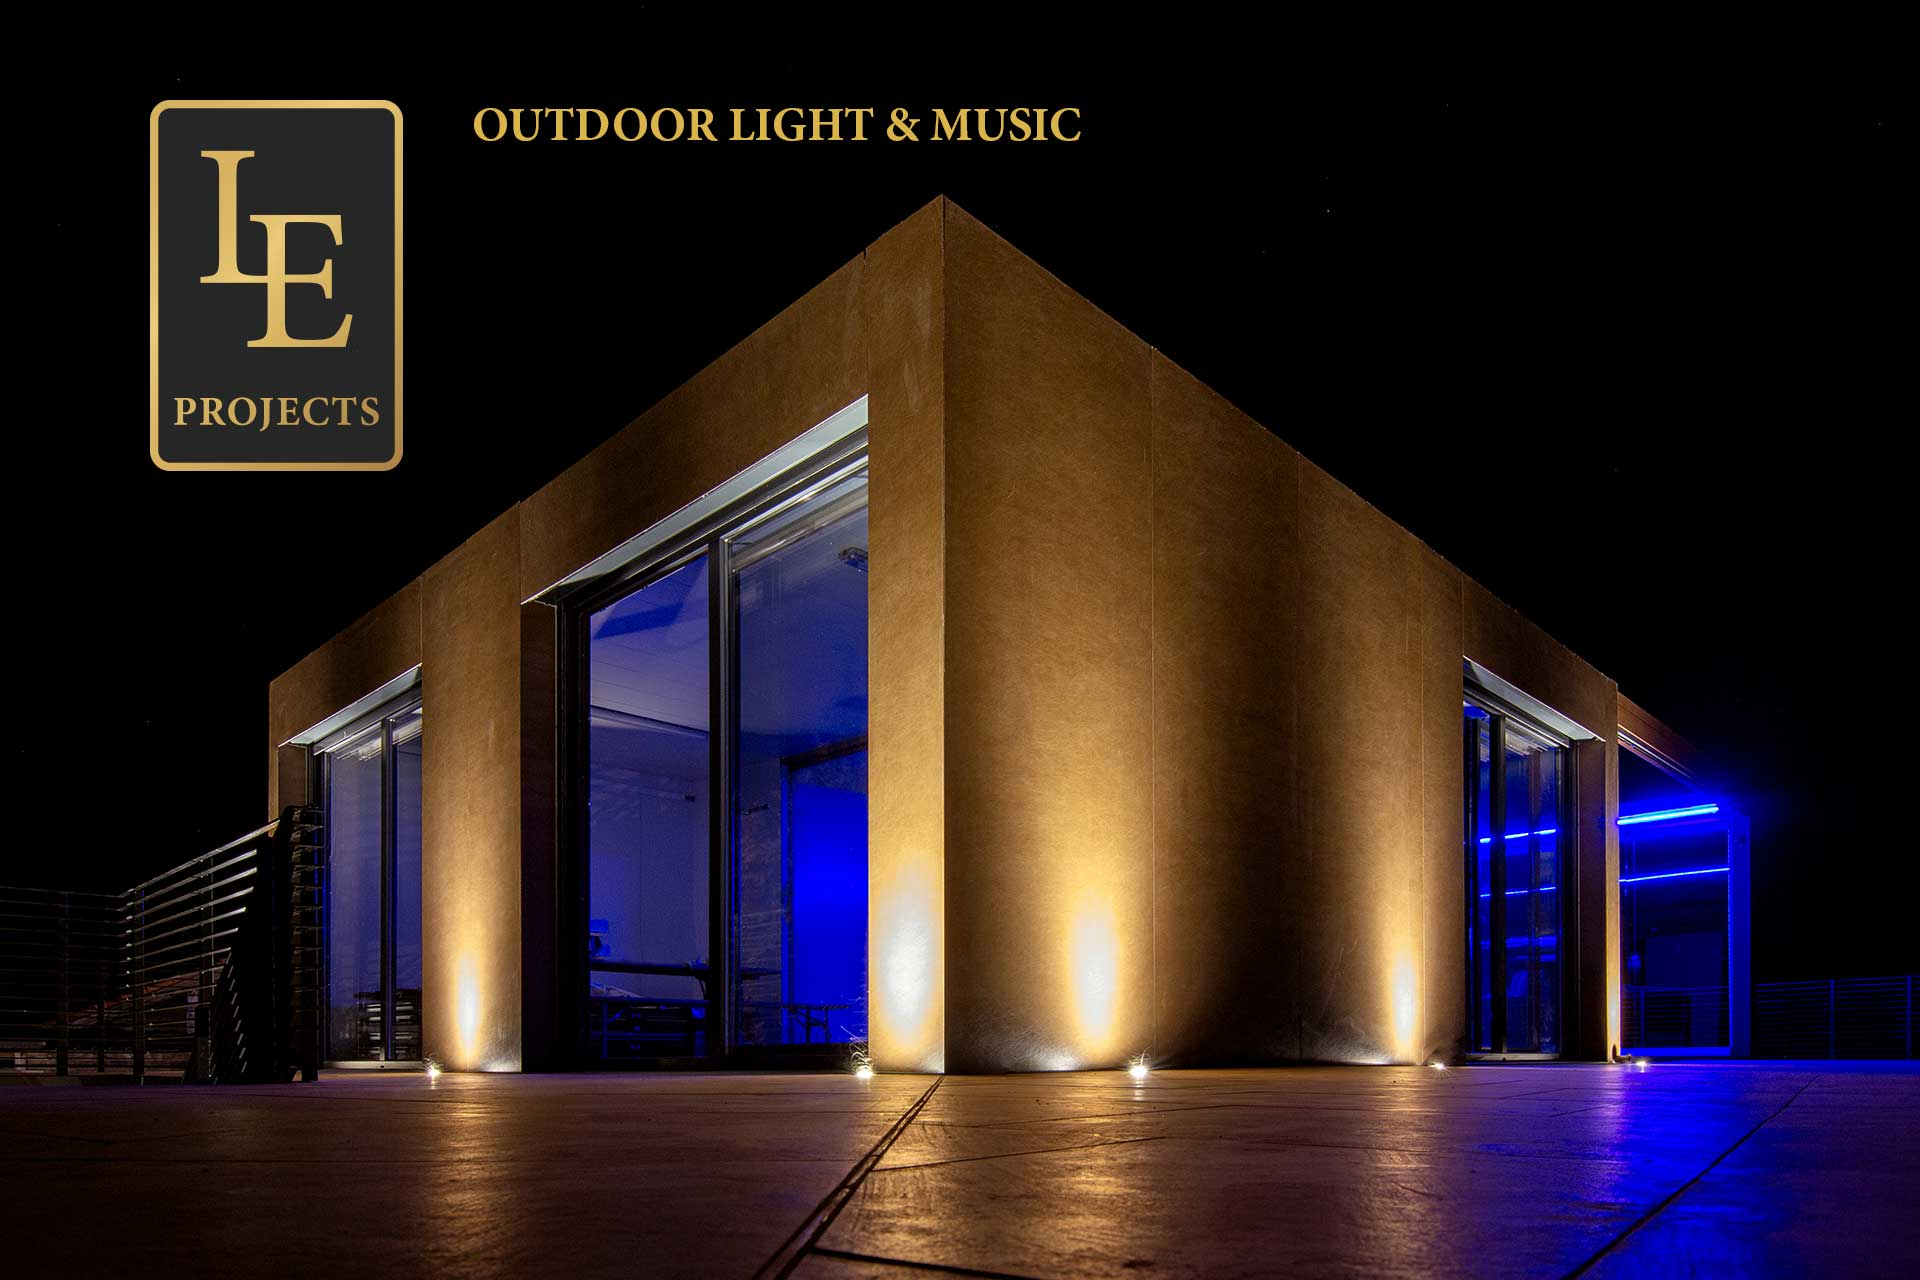 Outdoor Light & Music